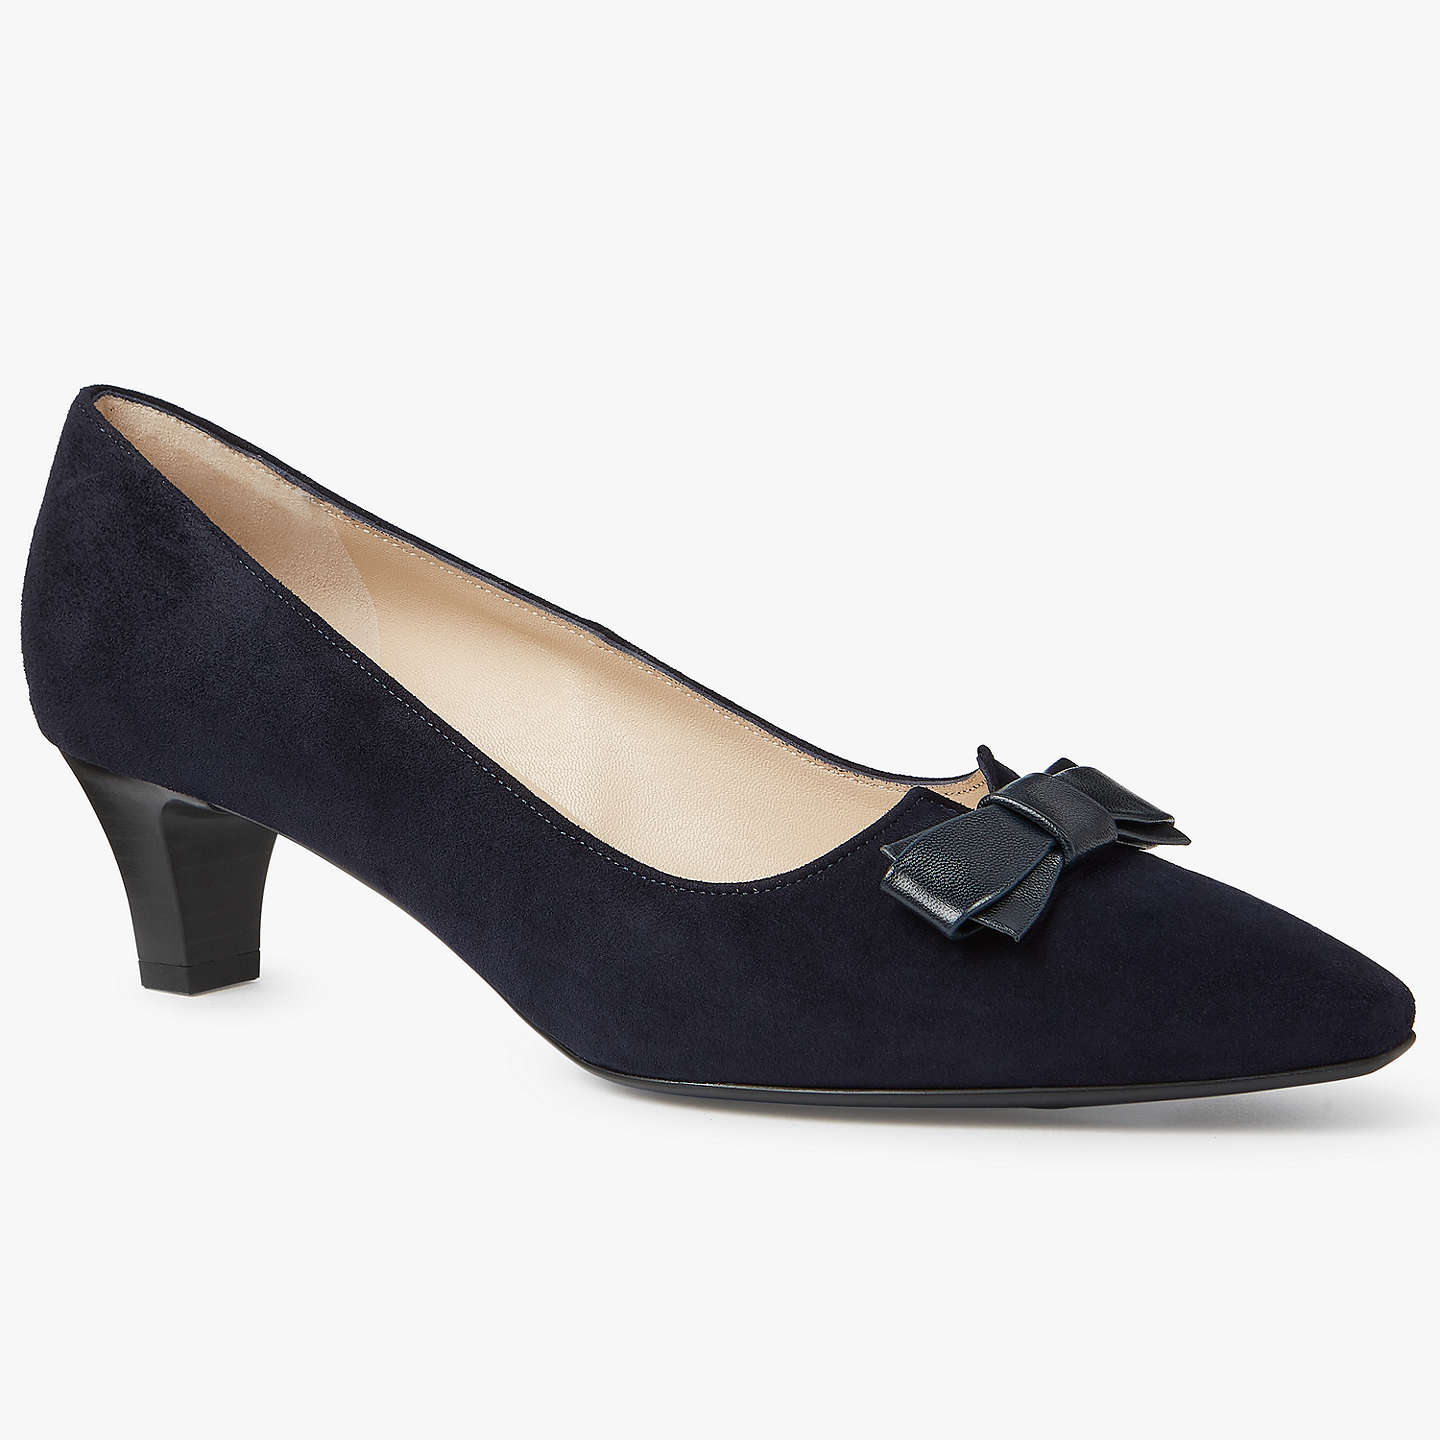 BuyPeter Kaiser Saris Pointed Toe Bow Court Shoes, Navy Suede, 4 Online at johnlewis.com